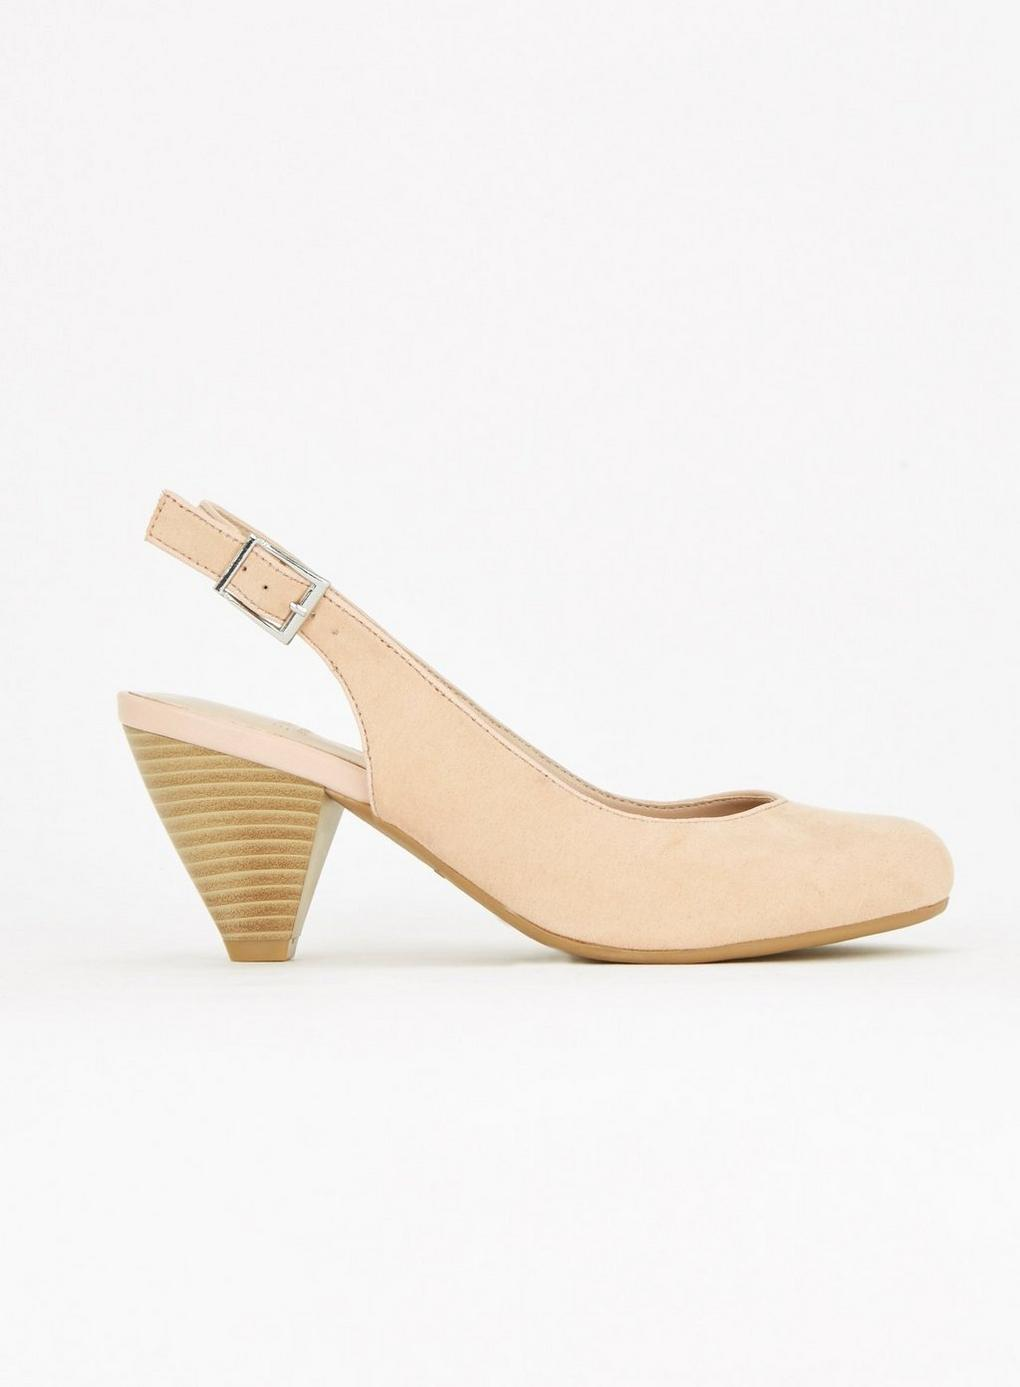 b906ddceb19 Evans Extra Wide Fit Nude Slingback Shoes in Natural - Lyst